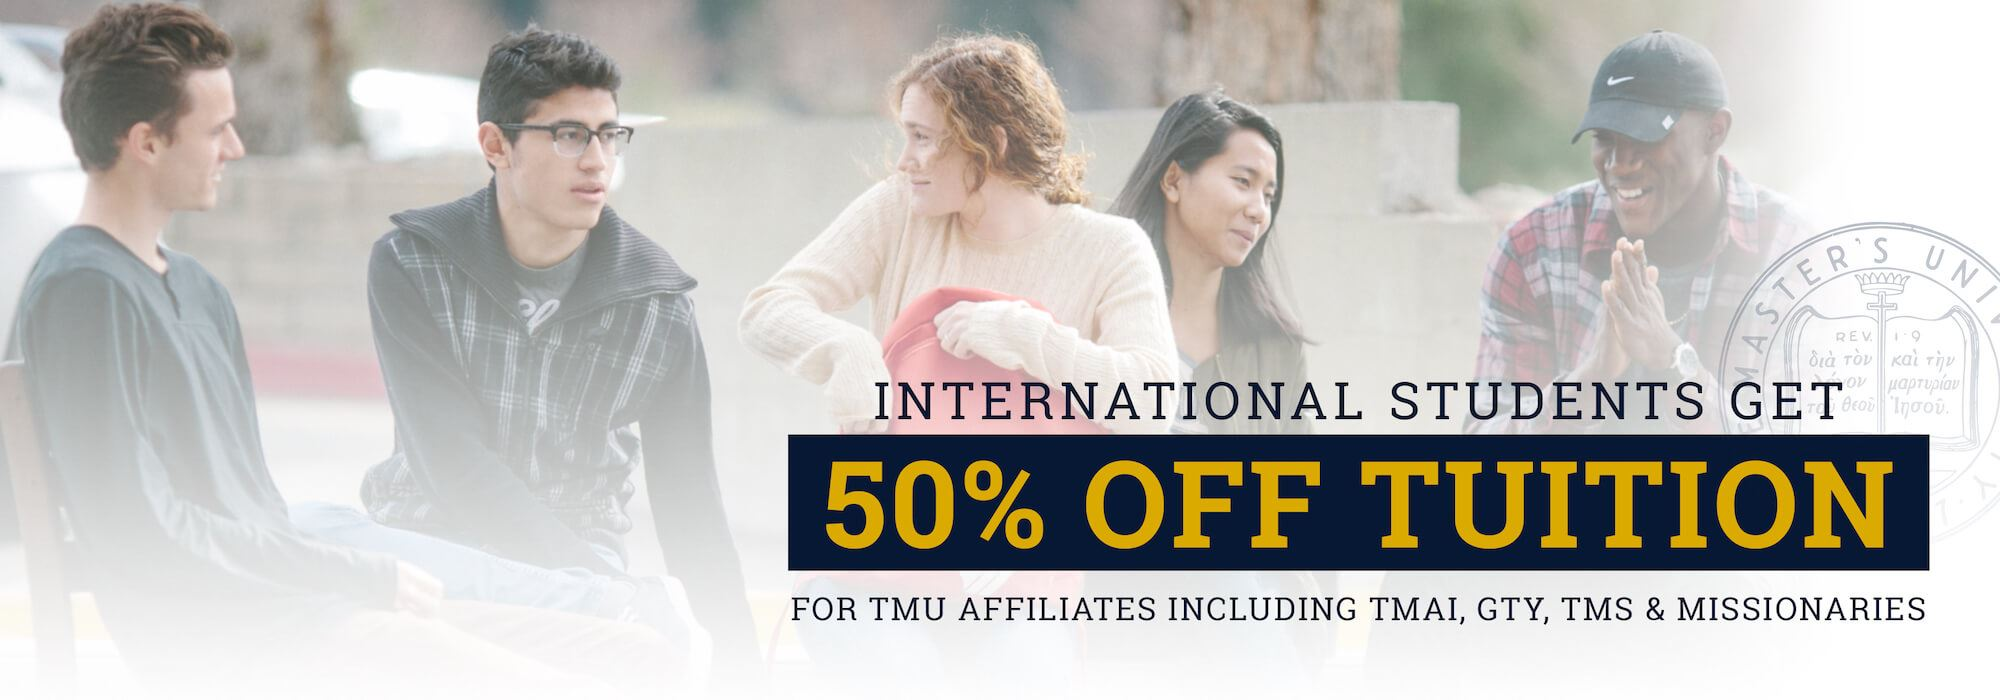 International Students Tuition Care